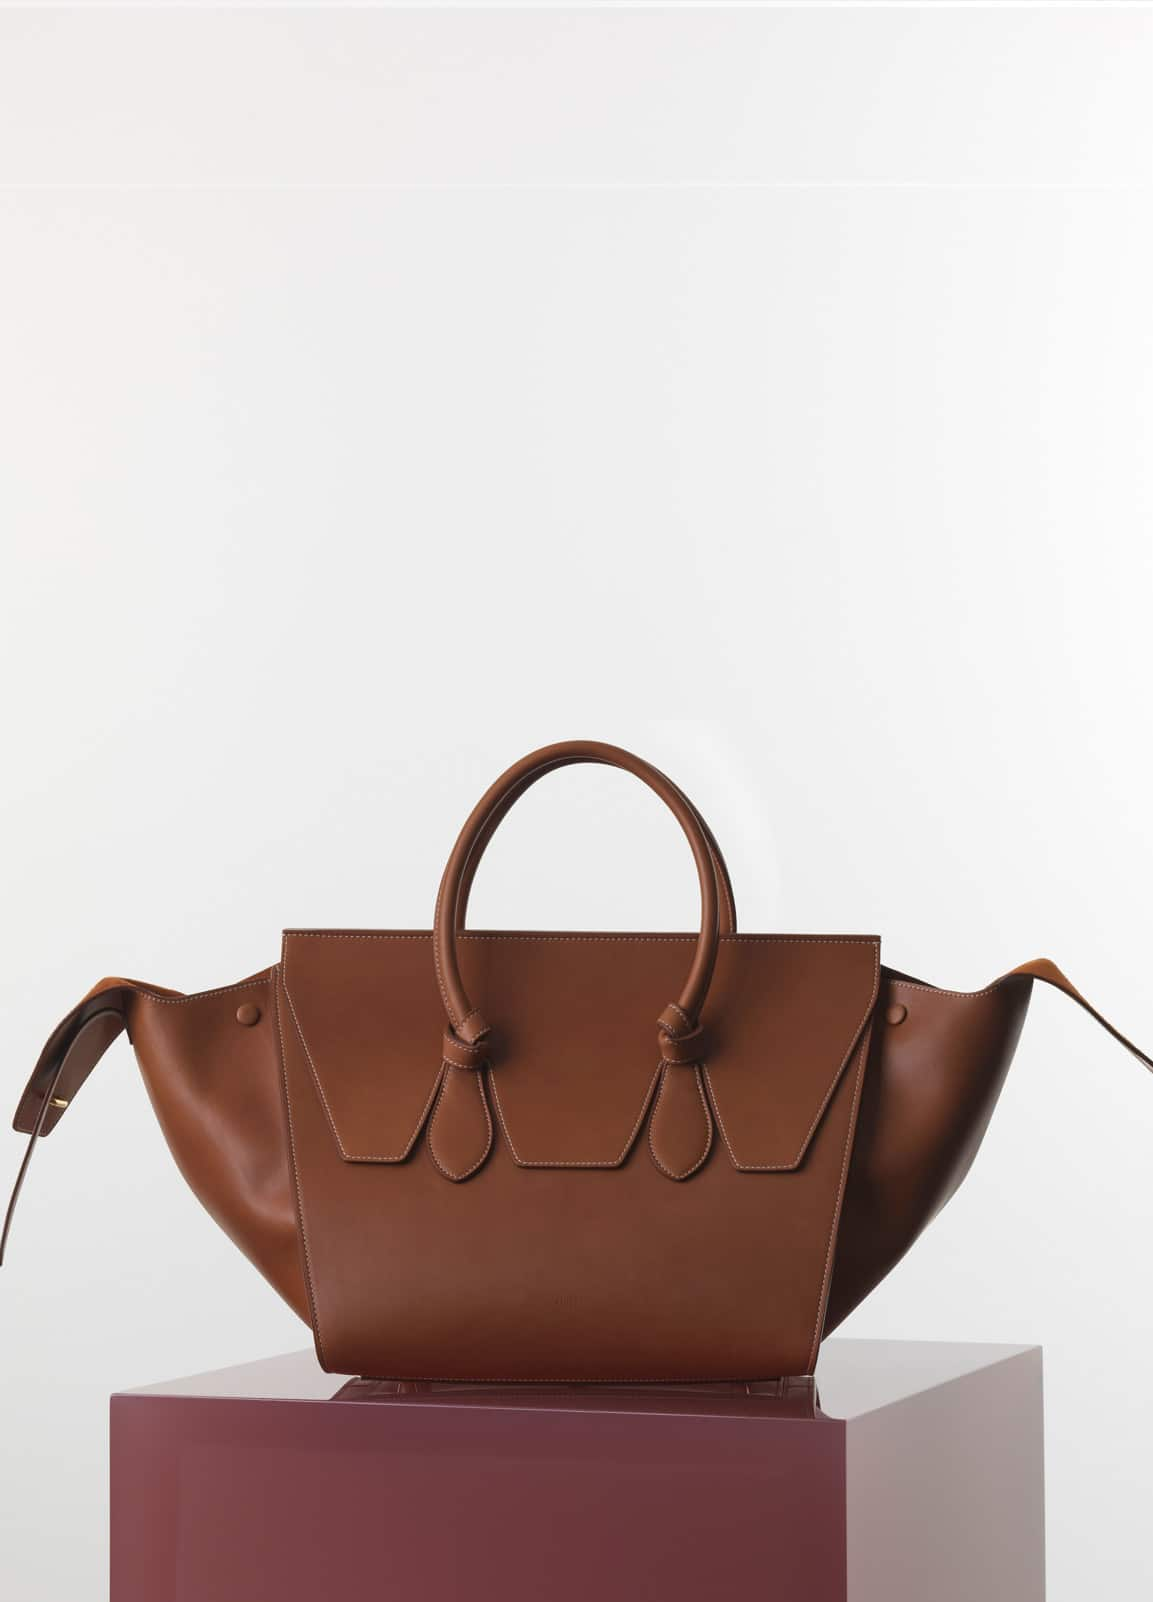 celine diaper bag - Celine Mini Tie Tote Bag Reference Guide | Spotted Fashion